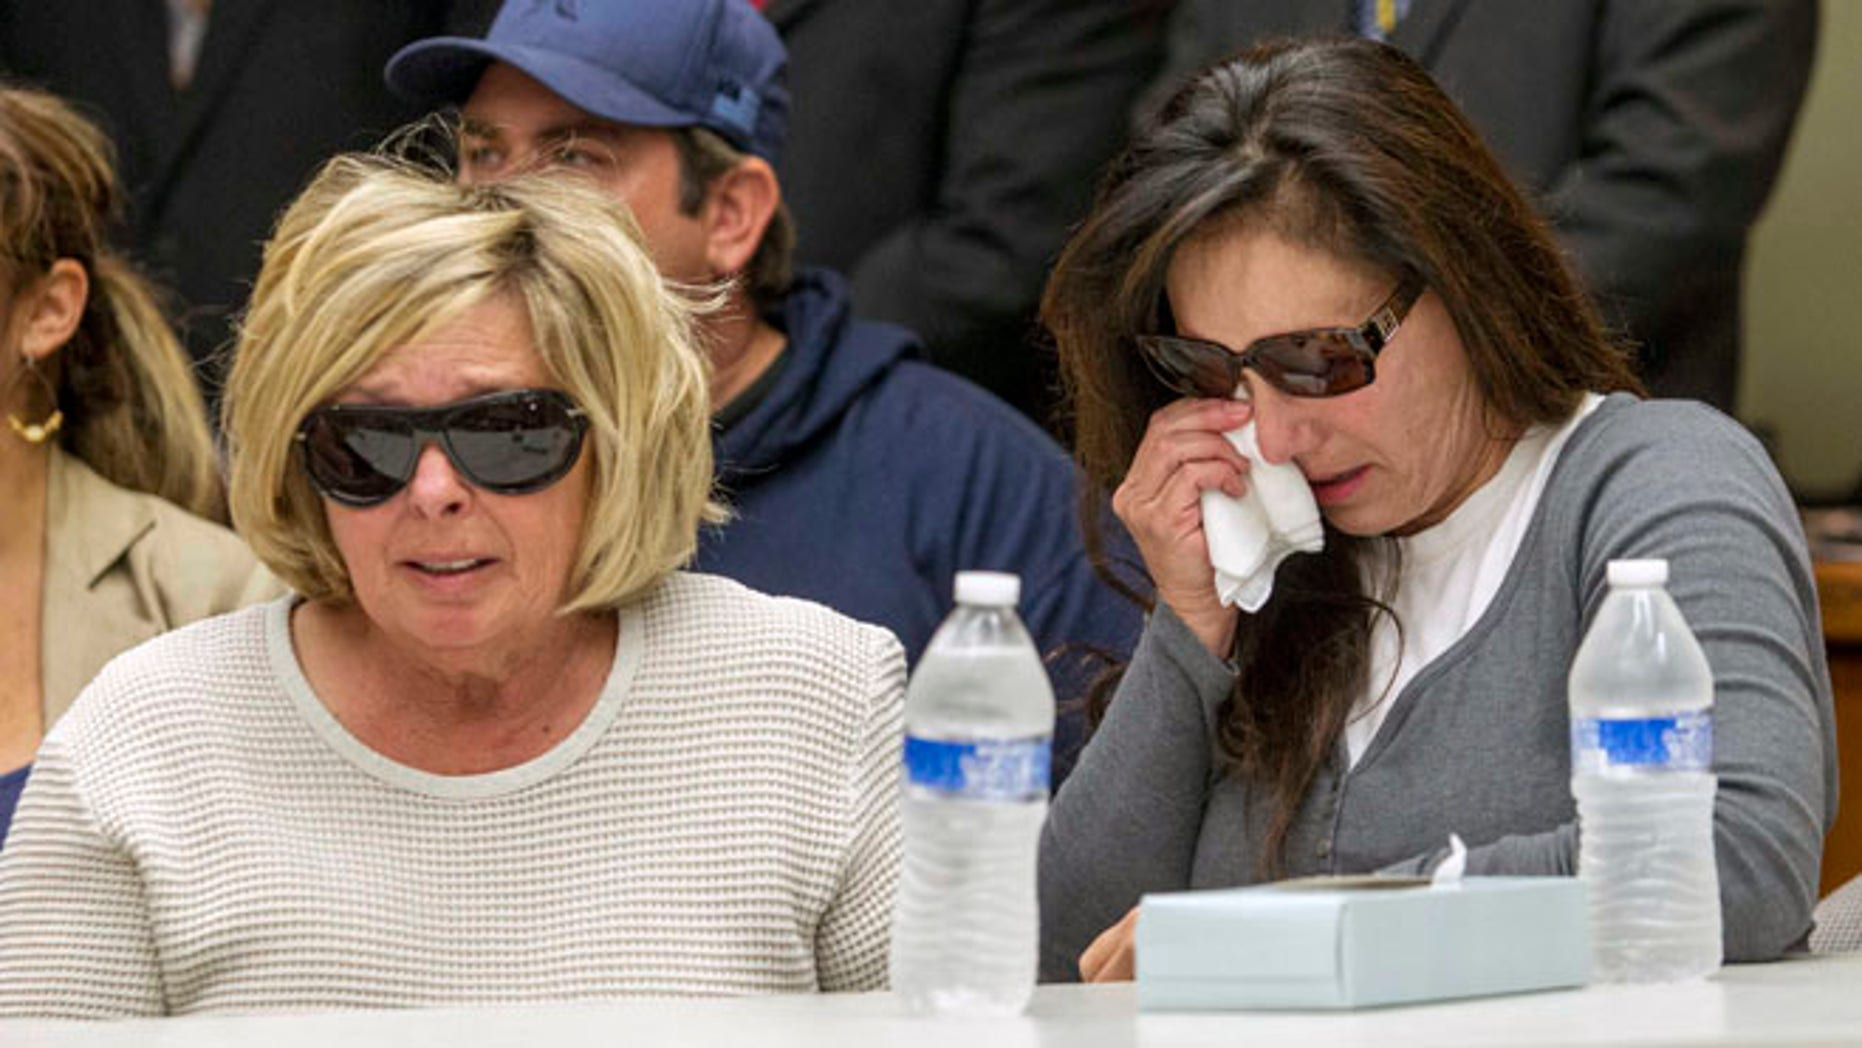 Nov. 15, 2013: Susan McStay, mother of Joseph McStay, left, and friend of victims' family, Emily, whose last name was not given, listen during a news conference at the San Bernardino County Sheriffs Department Headquarters.